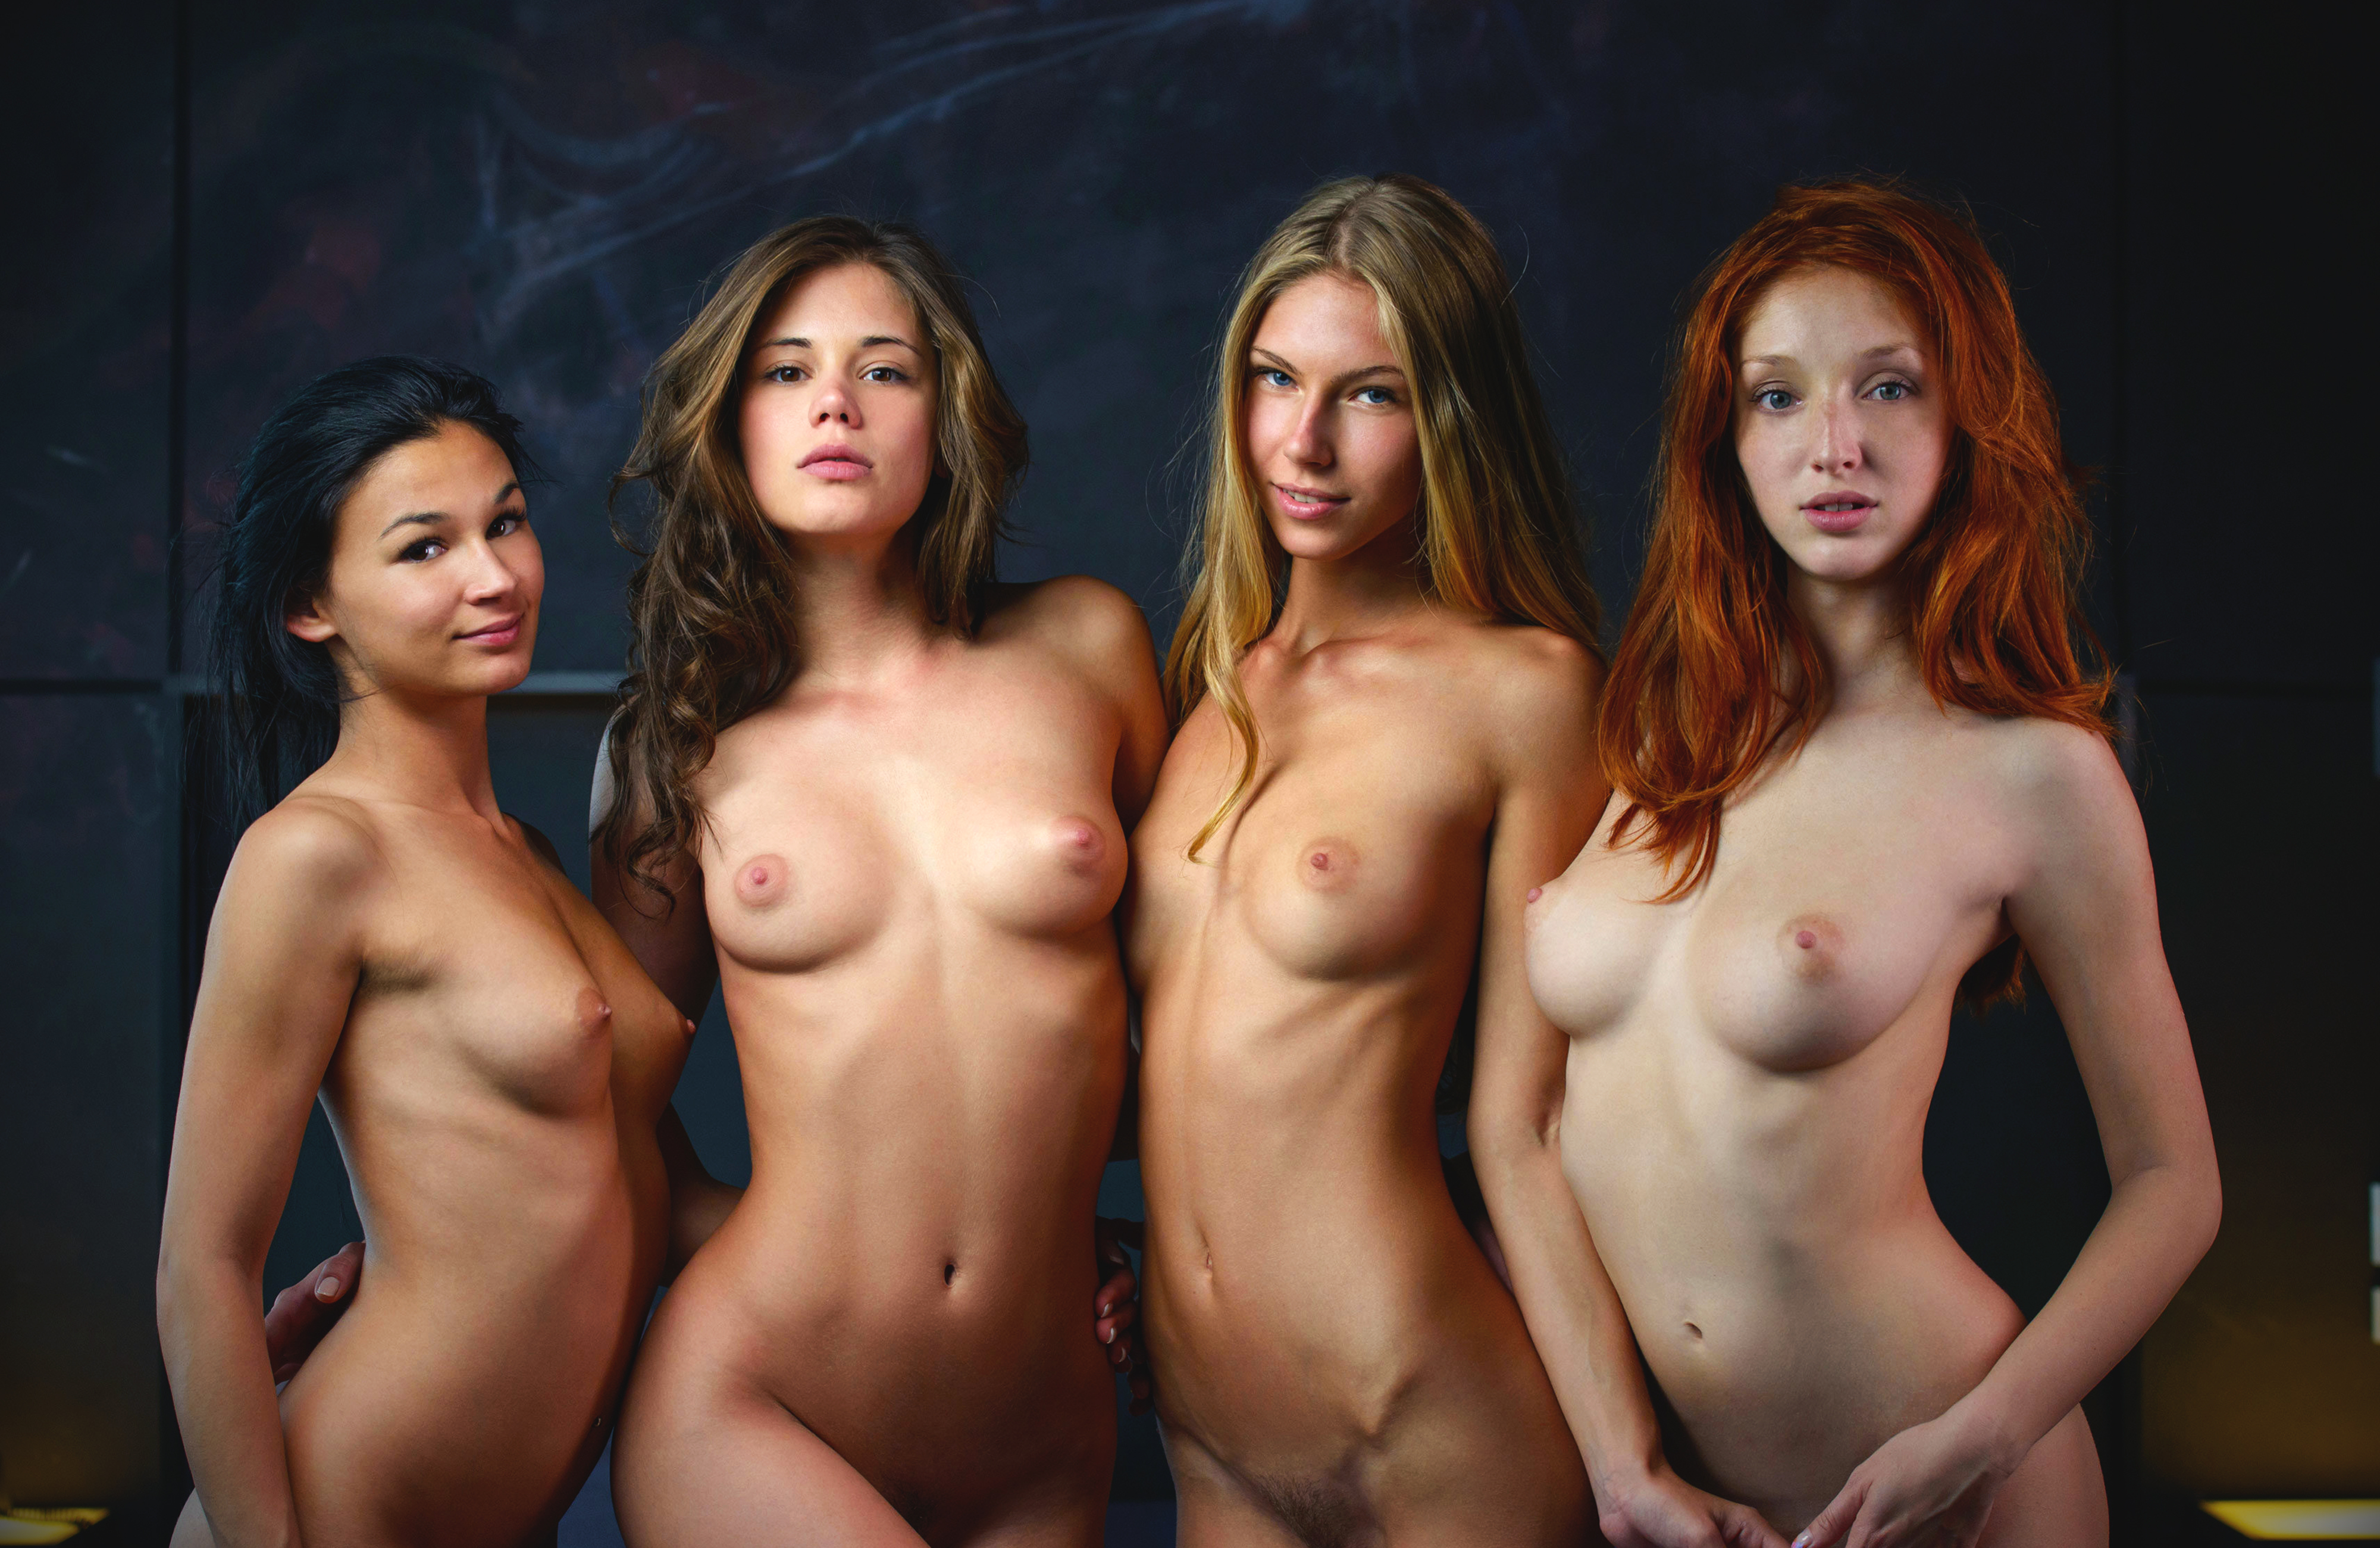 free-pics-of-nude-young-women-video-sex-verjin-group